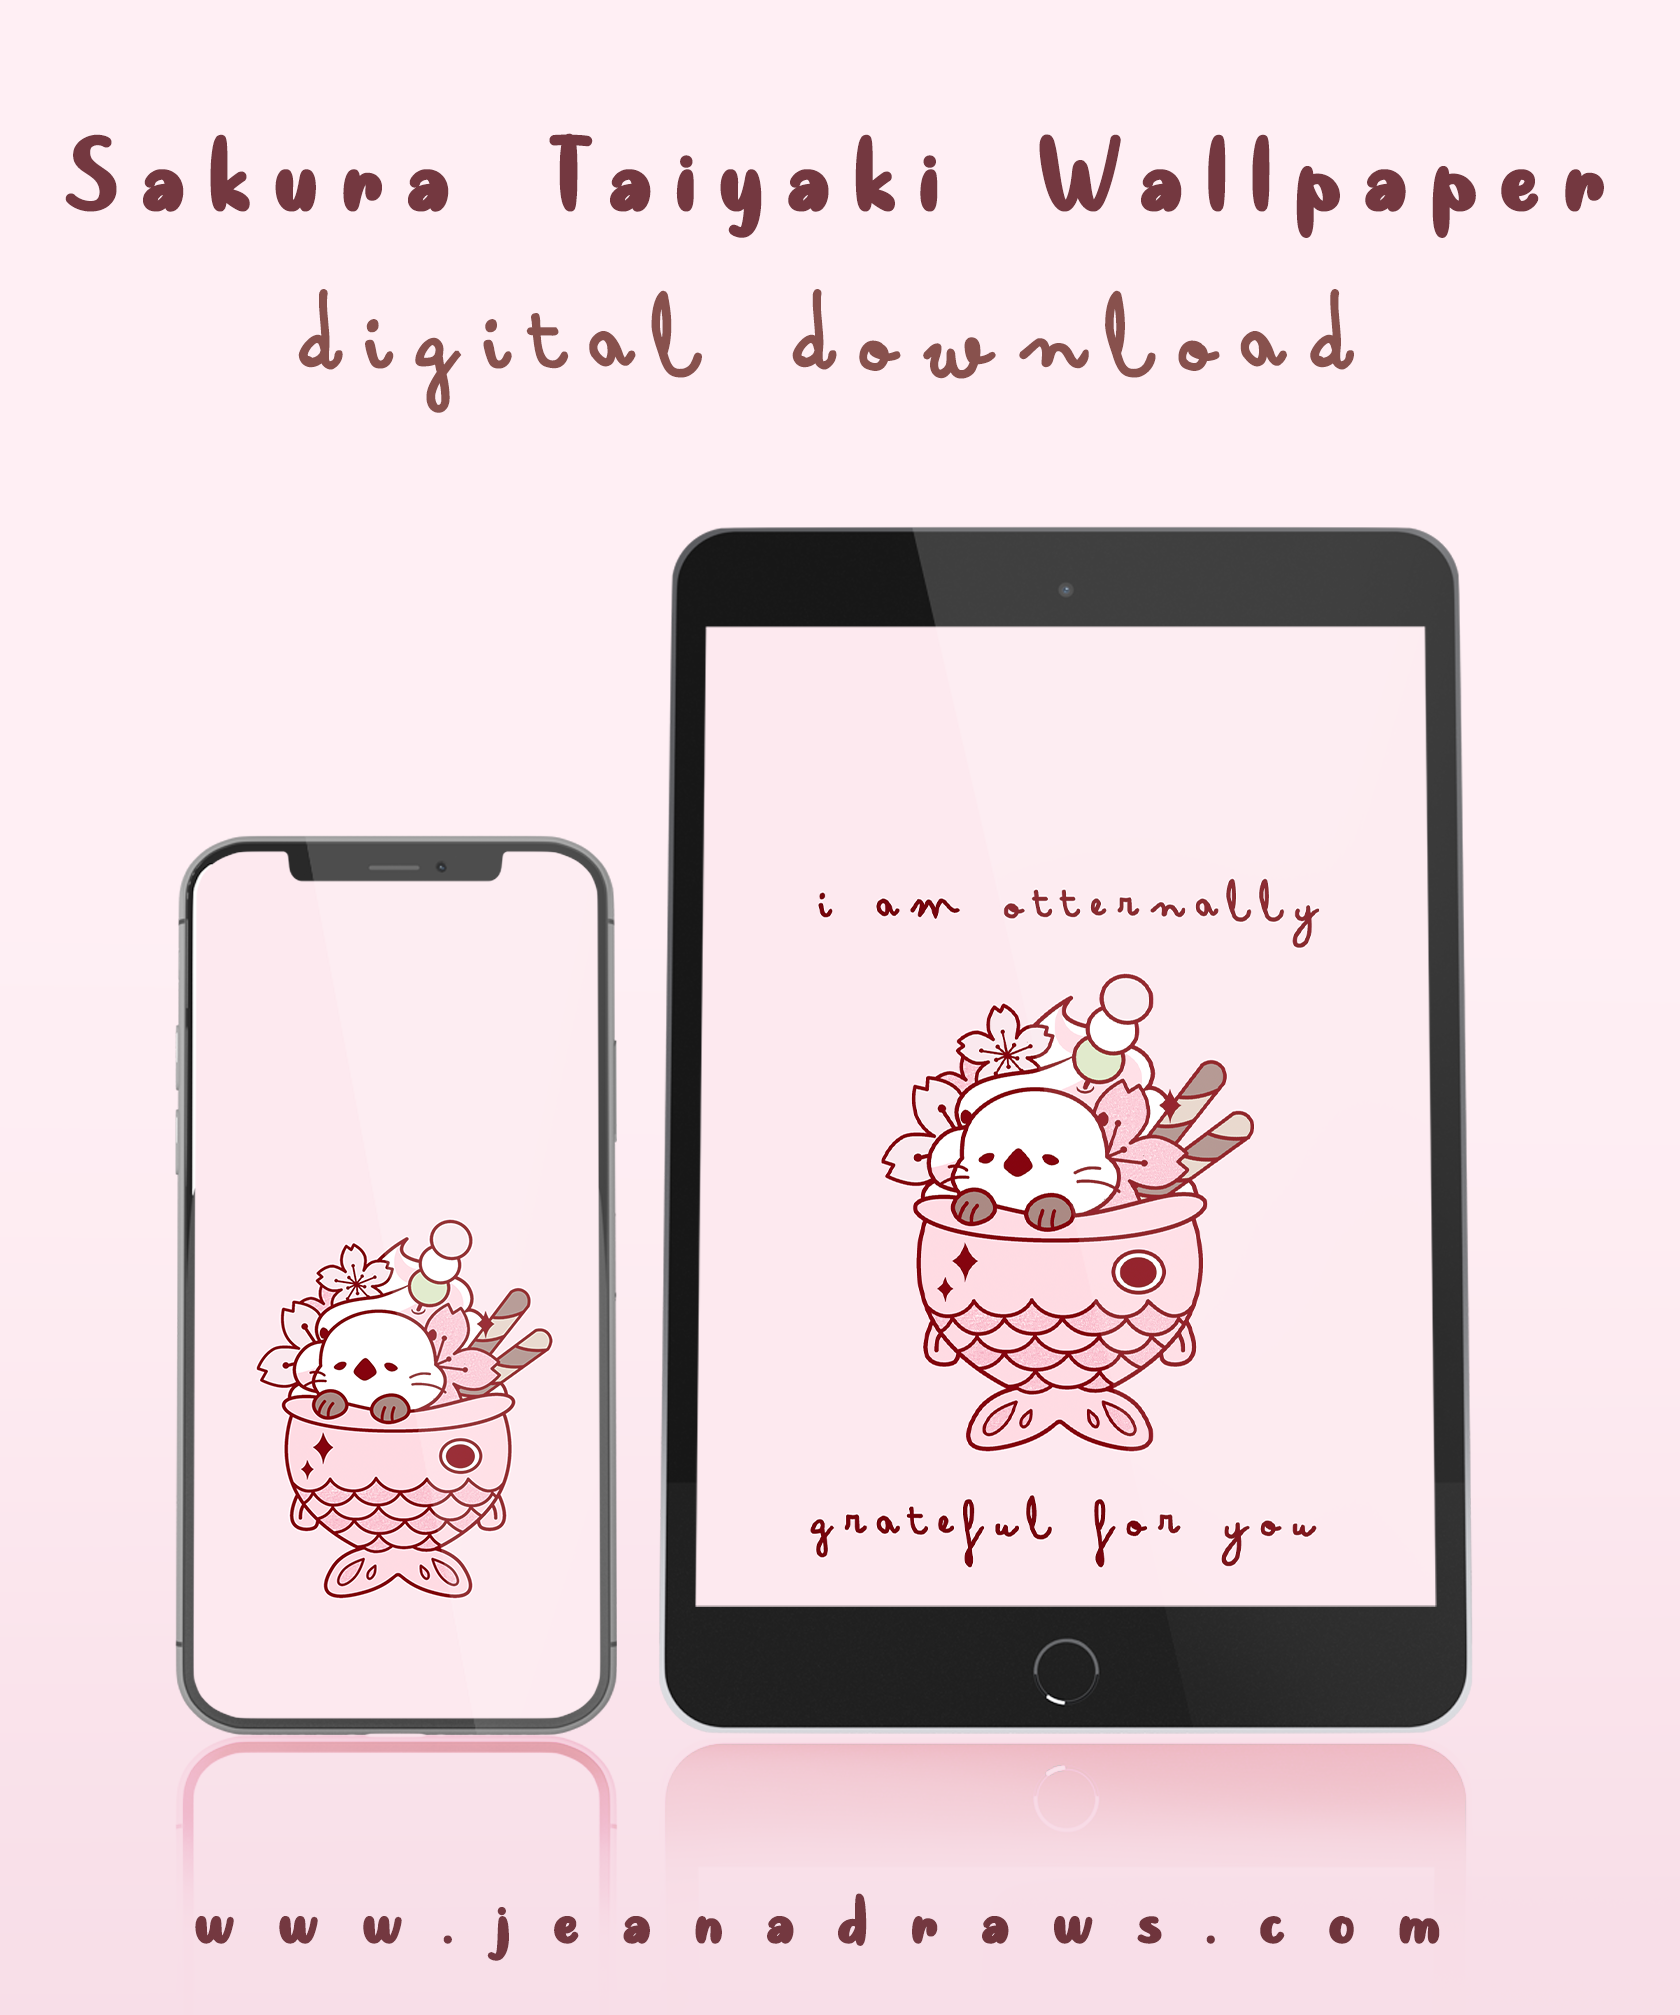 Sakura Taiyaki Wallpaper [Digital Download]